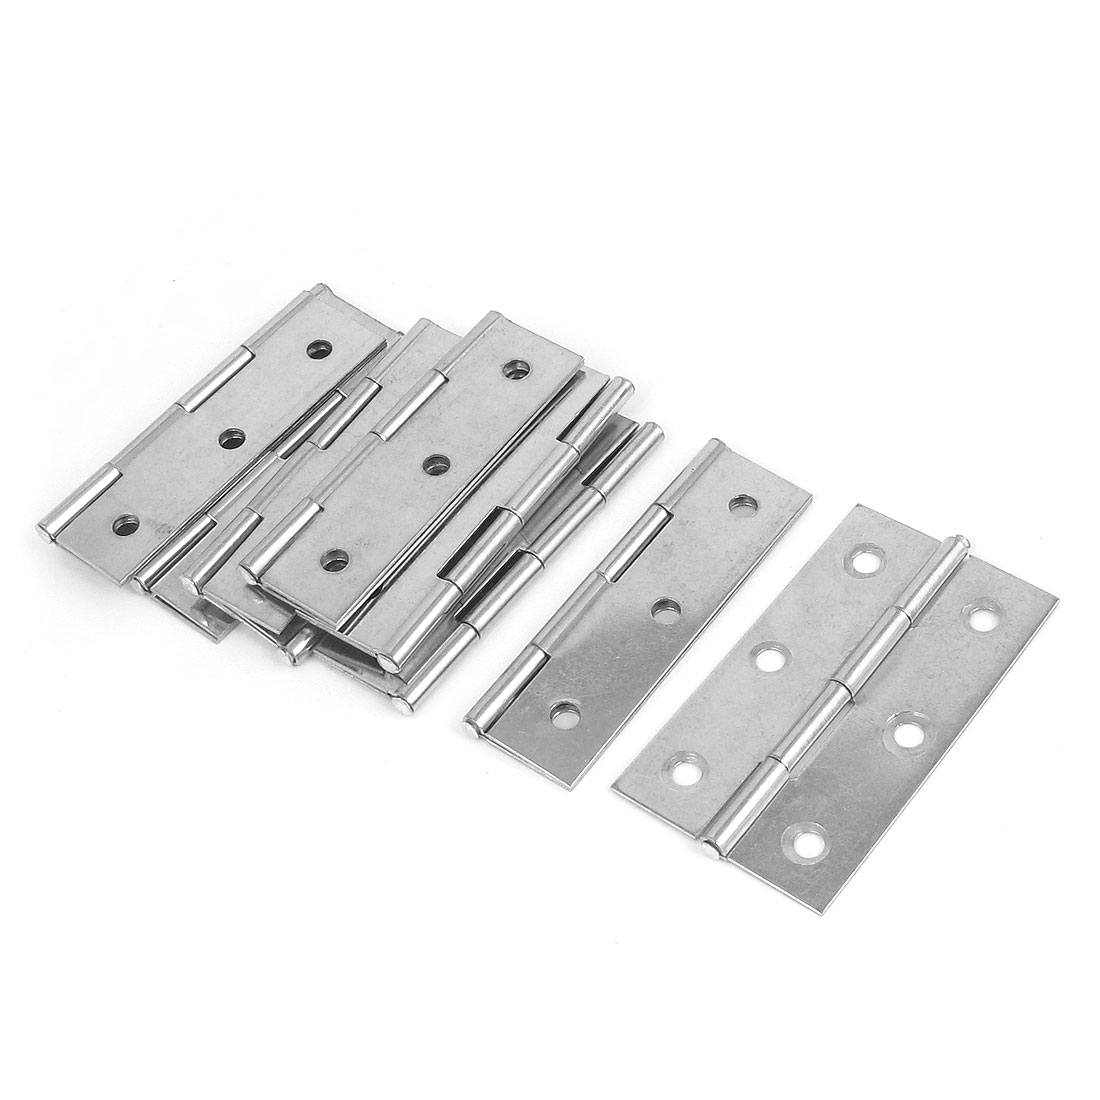 10Pcs 65mmx37mm Stainless Steel Folding Furniture Cabinet Door Butt Hinge